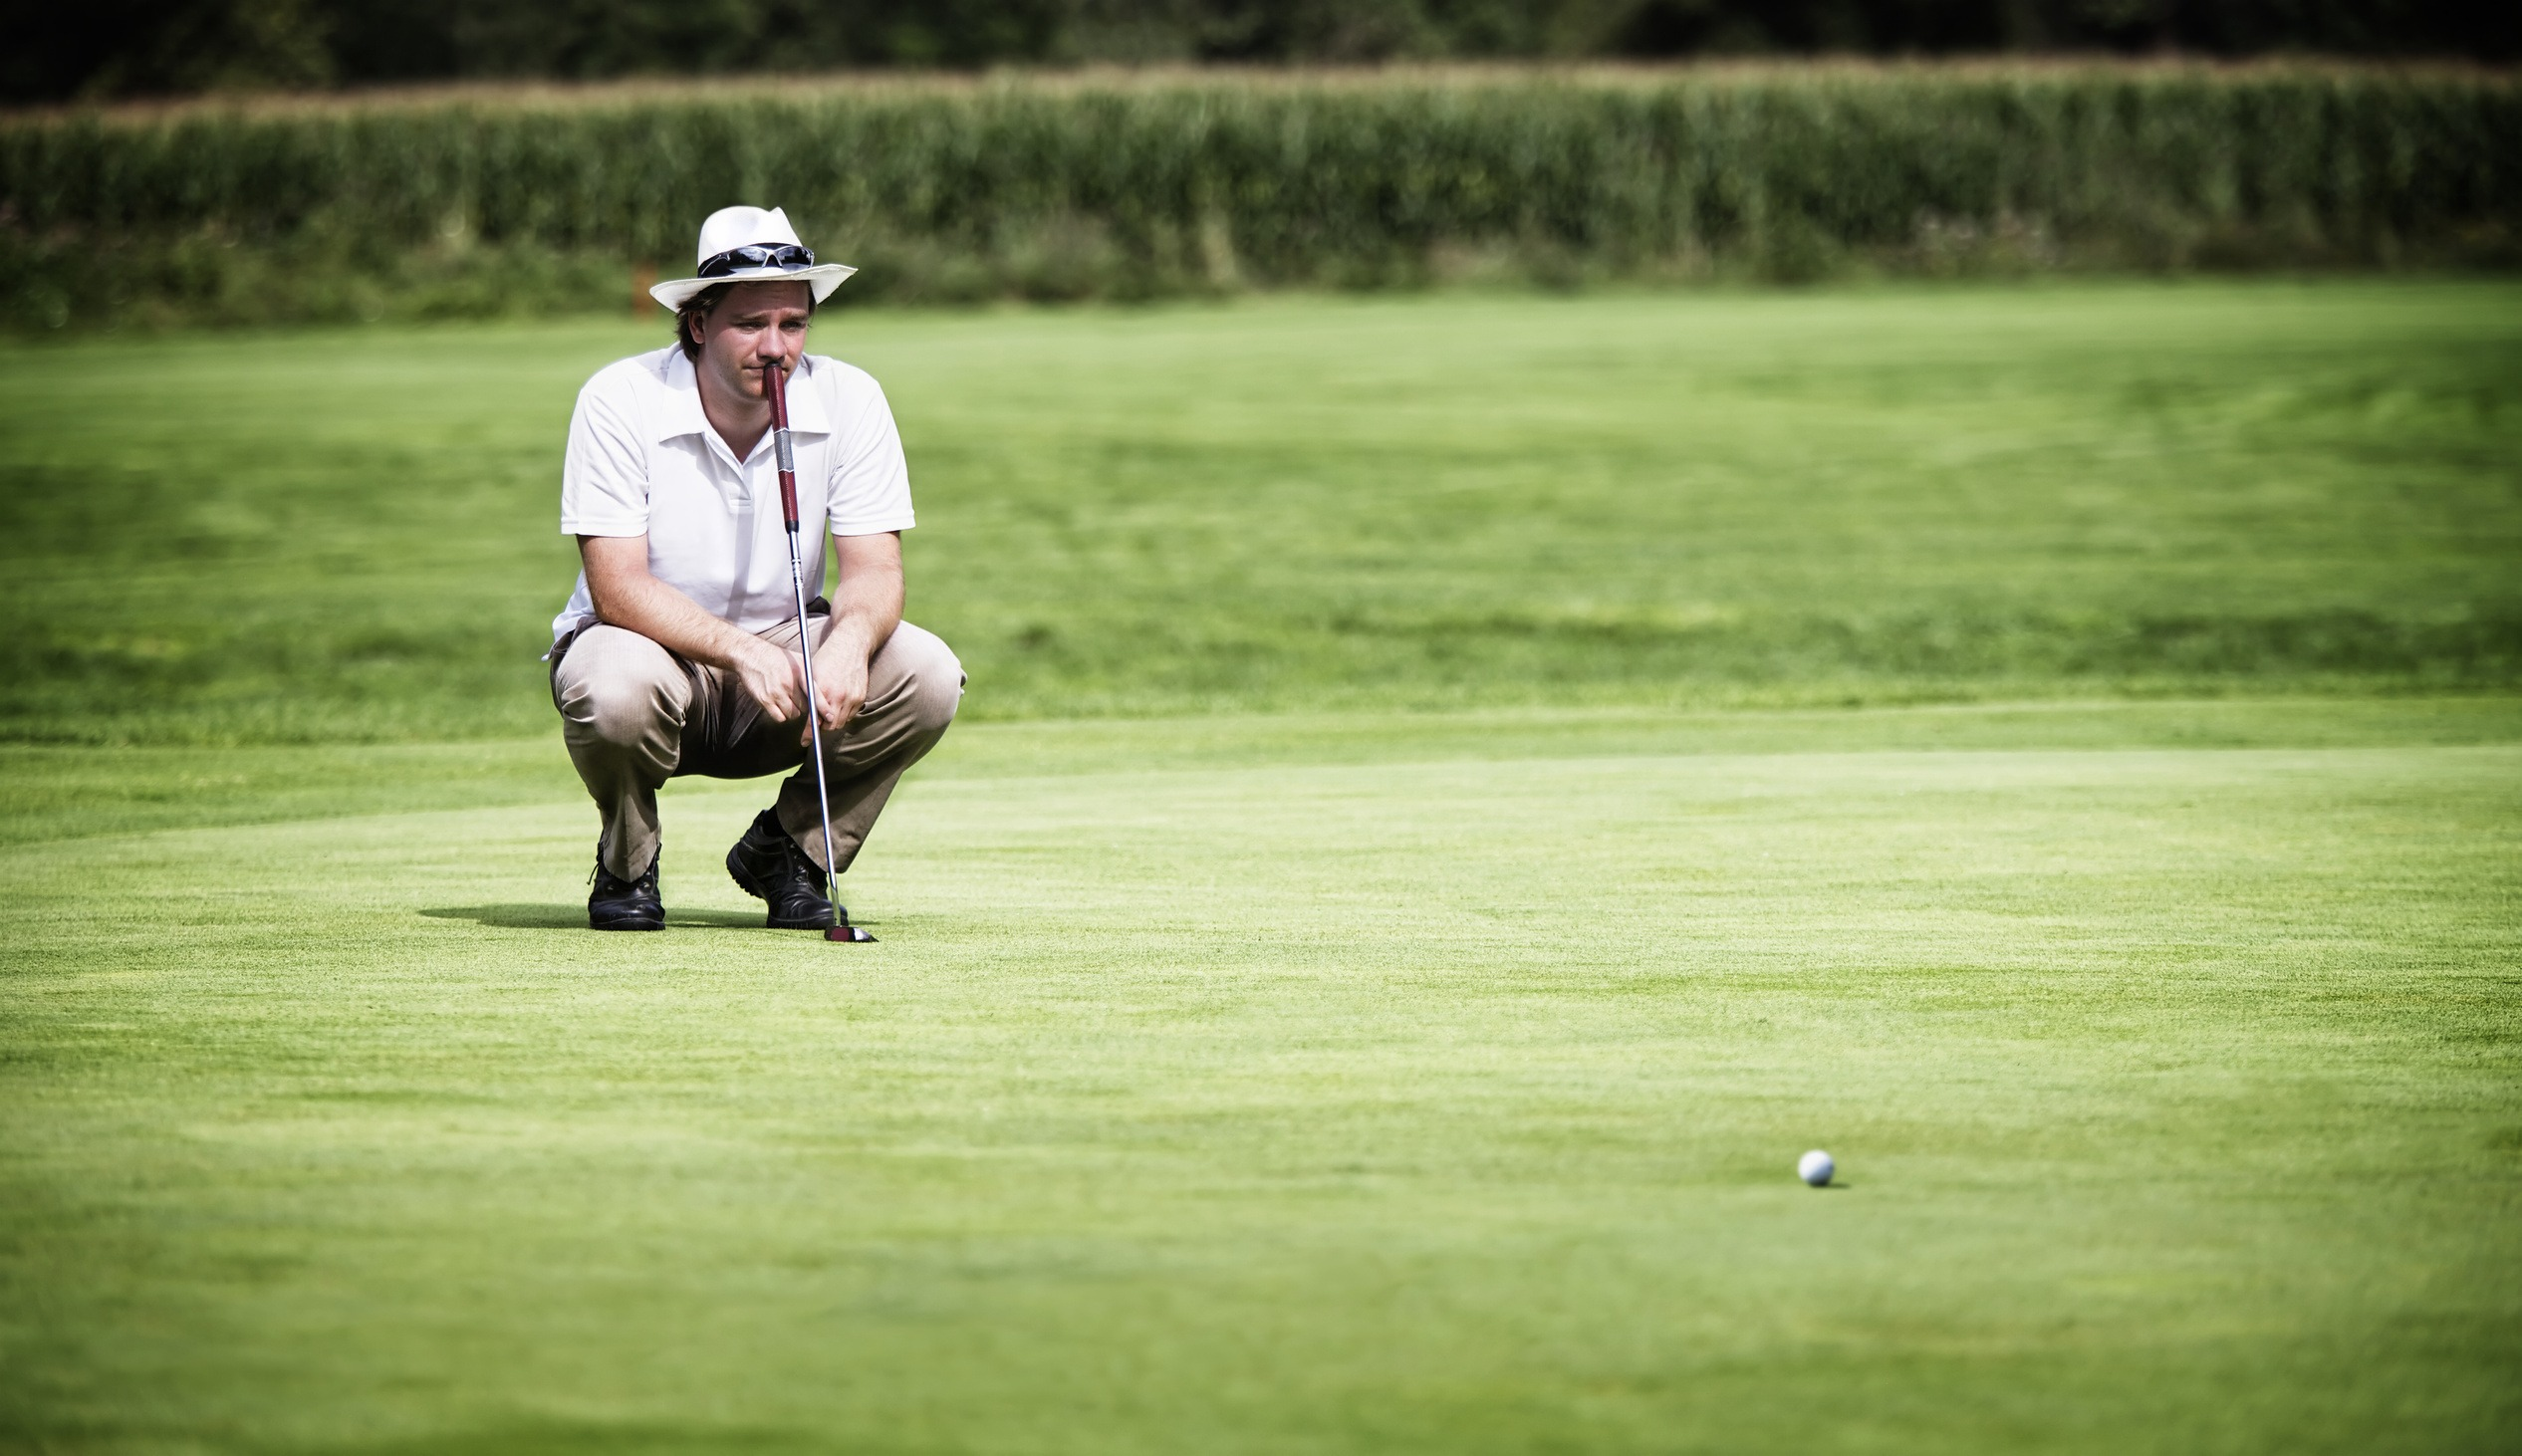 Young male golf player with putter squatting to study the green at golf course.